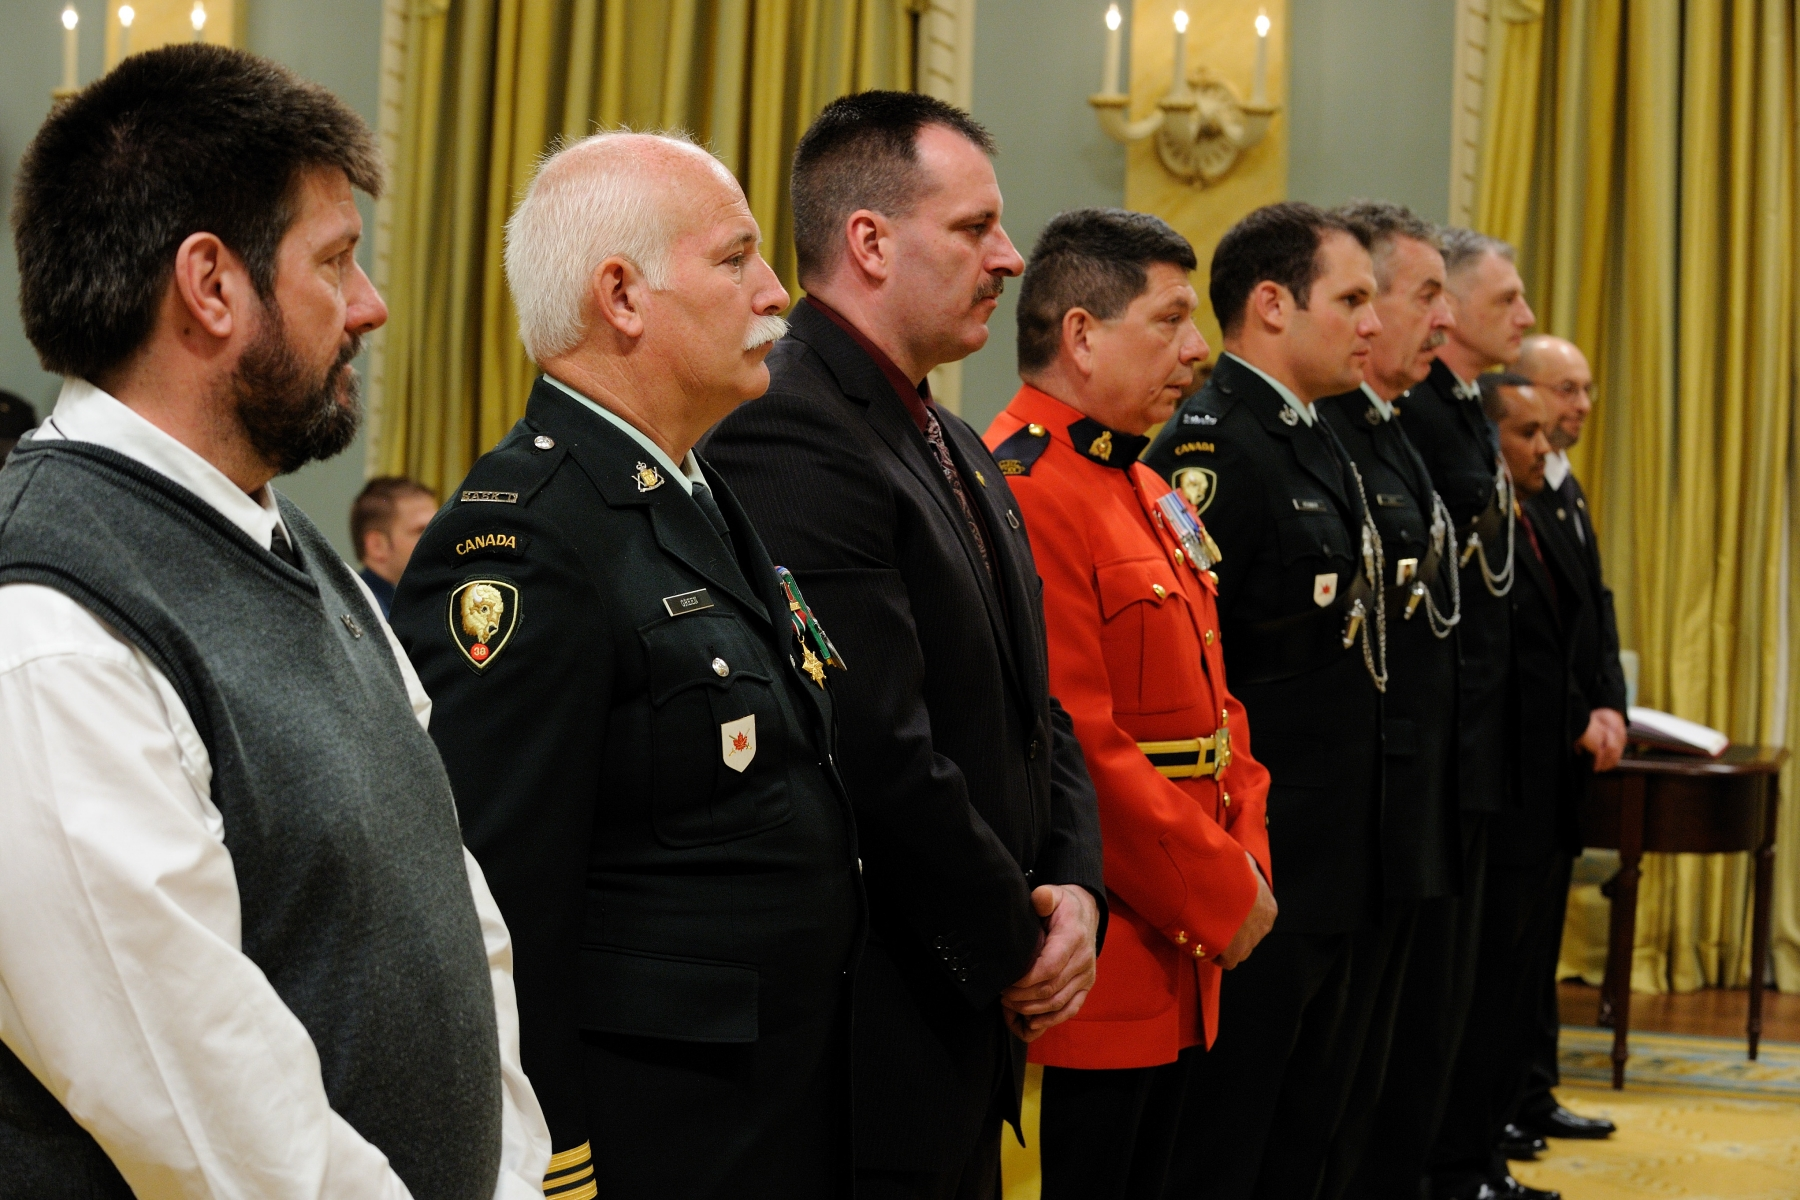 On October 12, 2007, Major William Green, M.B., C.D., Warrant Officer Shaun Spence, M.B., C.D., Sergeant Joseph Penman, M.B., Roland Bouliane, M.B., and Abebe Yohannes, M.B., rescued two people who were trapped inside burning vehicles, in Headingly, Manitoba. The men tried frantically to put out the fire inside one vehicle, but the flames spread quickly and the dark smoke made it difficult to see inside. Major Green broke the rear window, pulled a little girl from the back seat and brought her to safety. Constable Alfred Lavallee, M.B., C.D., and the other rescuers again tried desperately to reach the two other victims inside, but were driven back by the heat and flames. Meanwhile, Blair Hockin, M.B., Hermann Zarbl, M.B., and Master Warrant Officer Hamish Seggie, M.B., C.D., ripped out parts of the dash on the second vehicle to pull out the driver, who was trapped beneath the debris. They removed the victim, moments before the vehicle became engulfed.